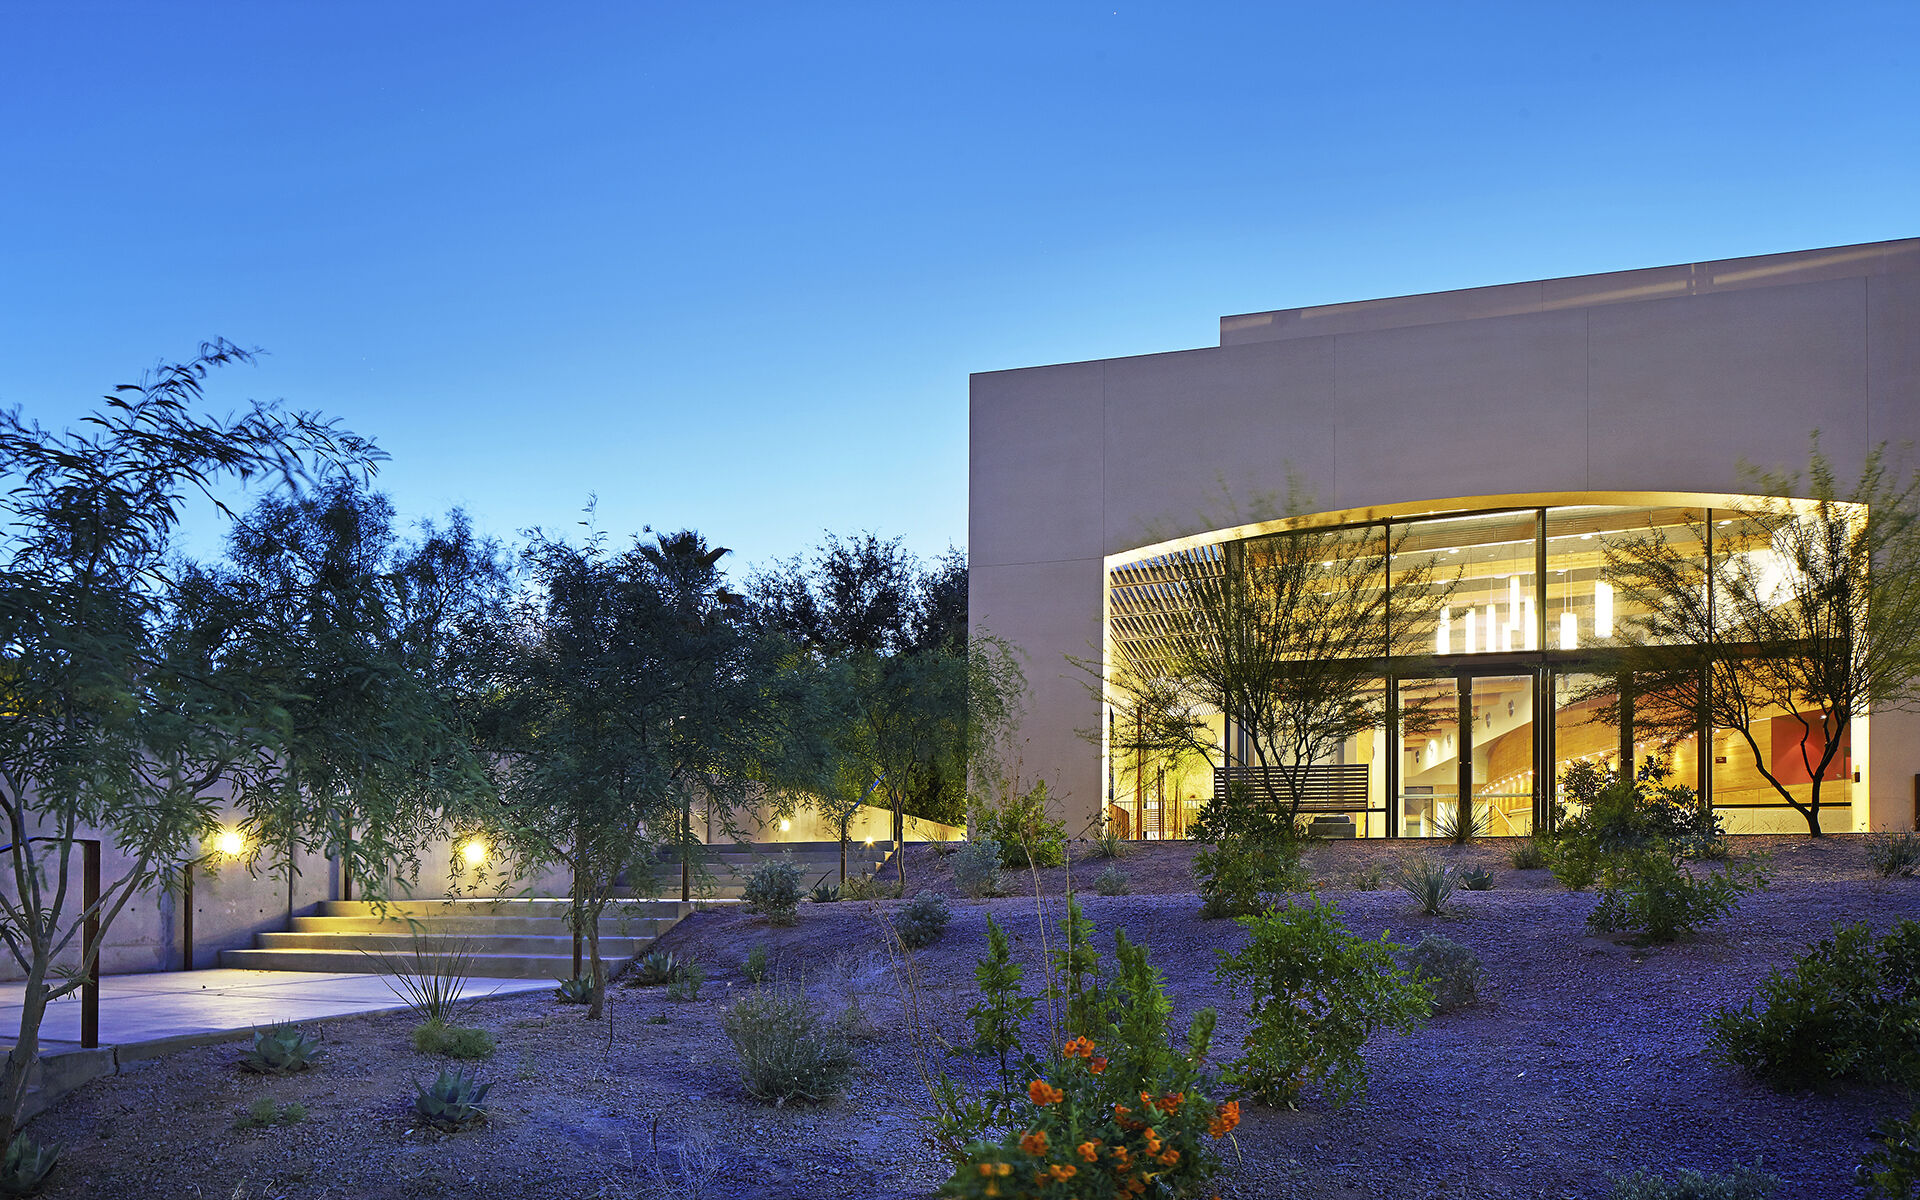 Pence Center for Visual & Performing Arts - Central Arizona College